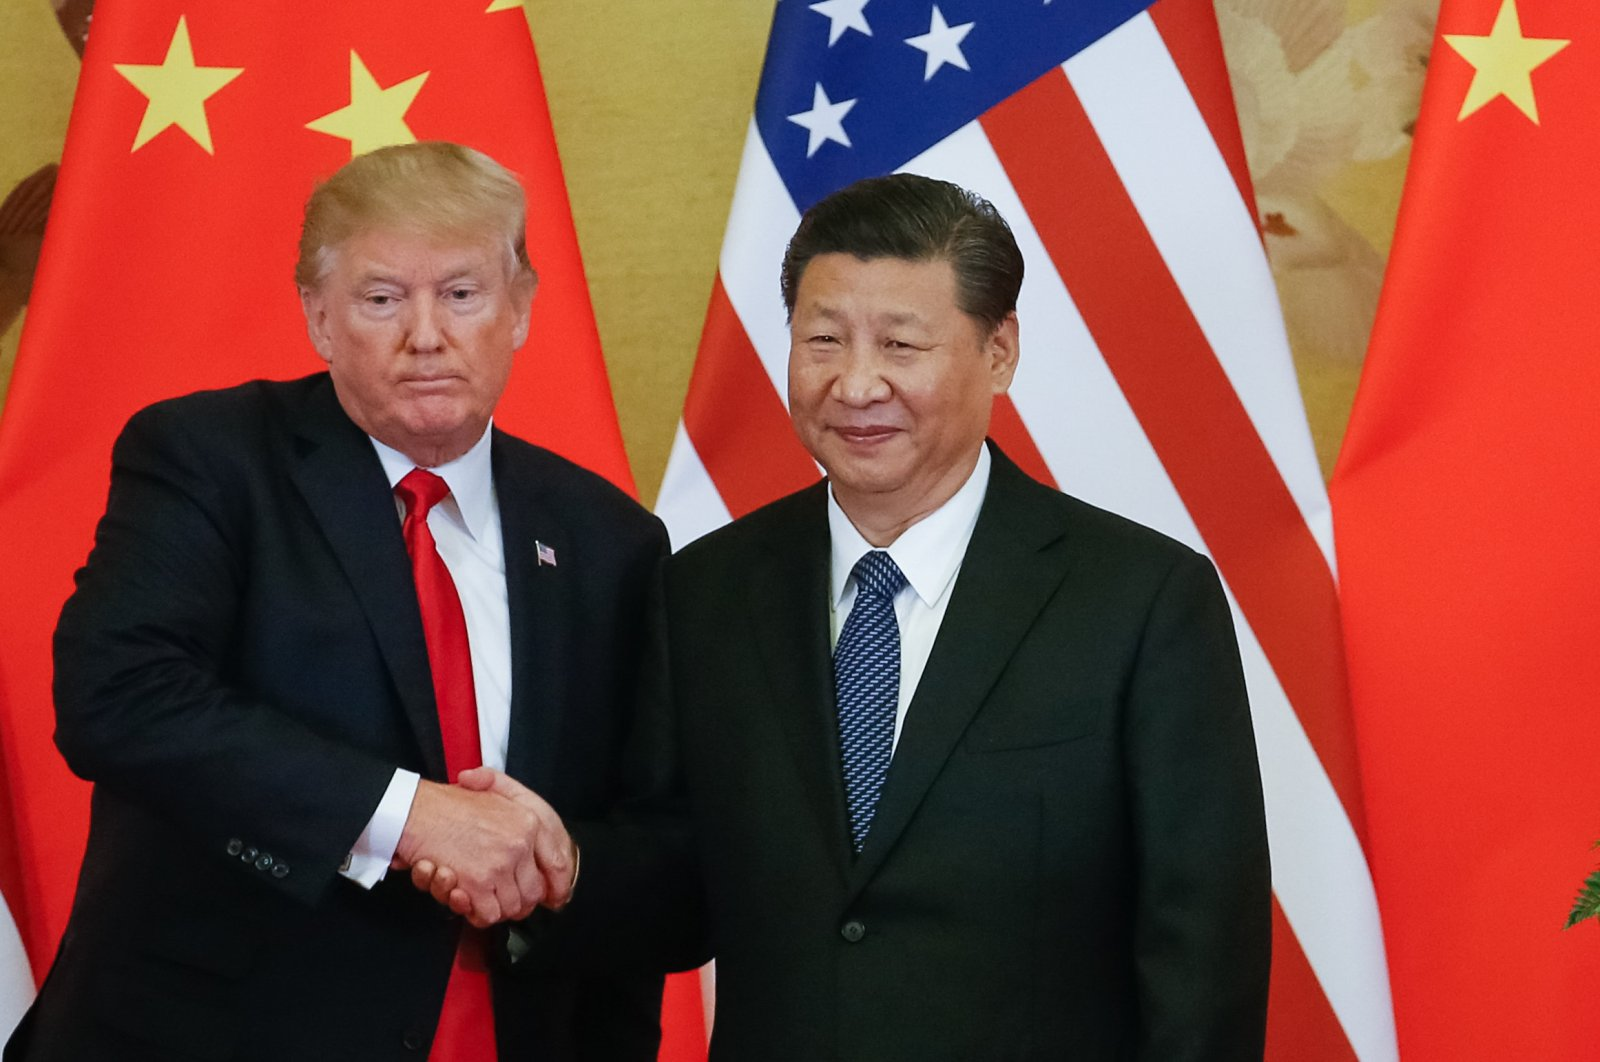 U.S. President Donald Trump and Chinese President Xi Jinping shake hands during a press conference at the Great Hall of the People (GHOP) in Beijing, China, Nov. 9, 2017. (EPA Photo)